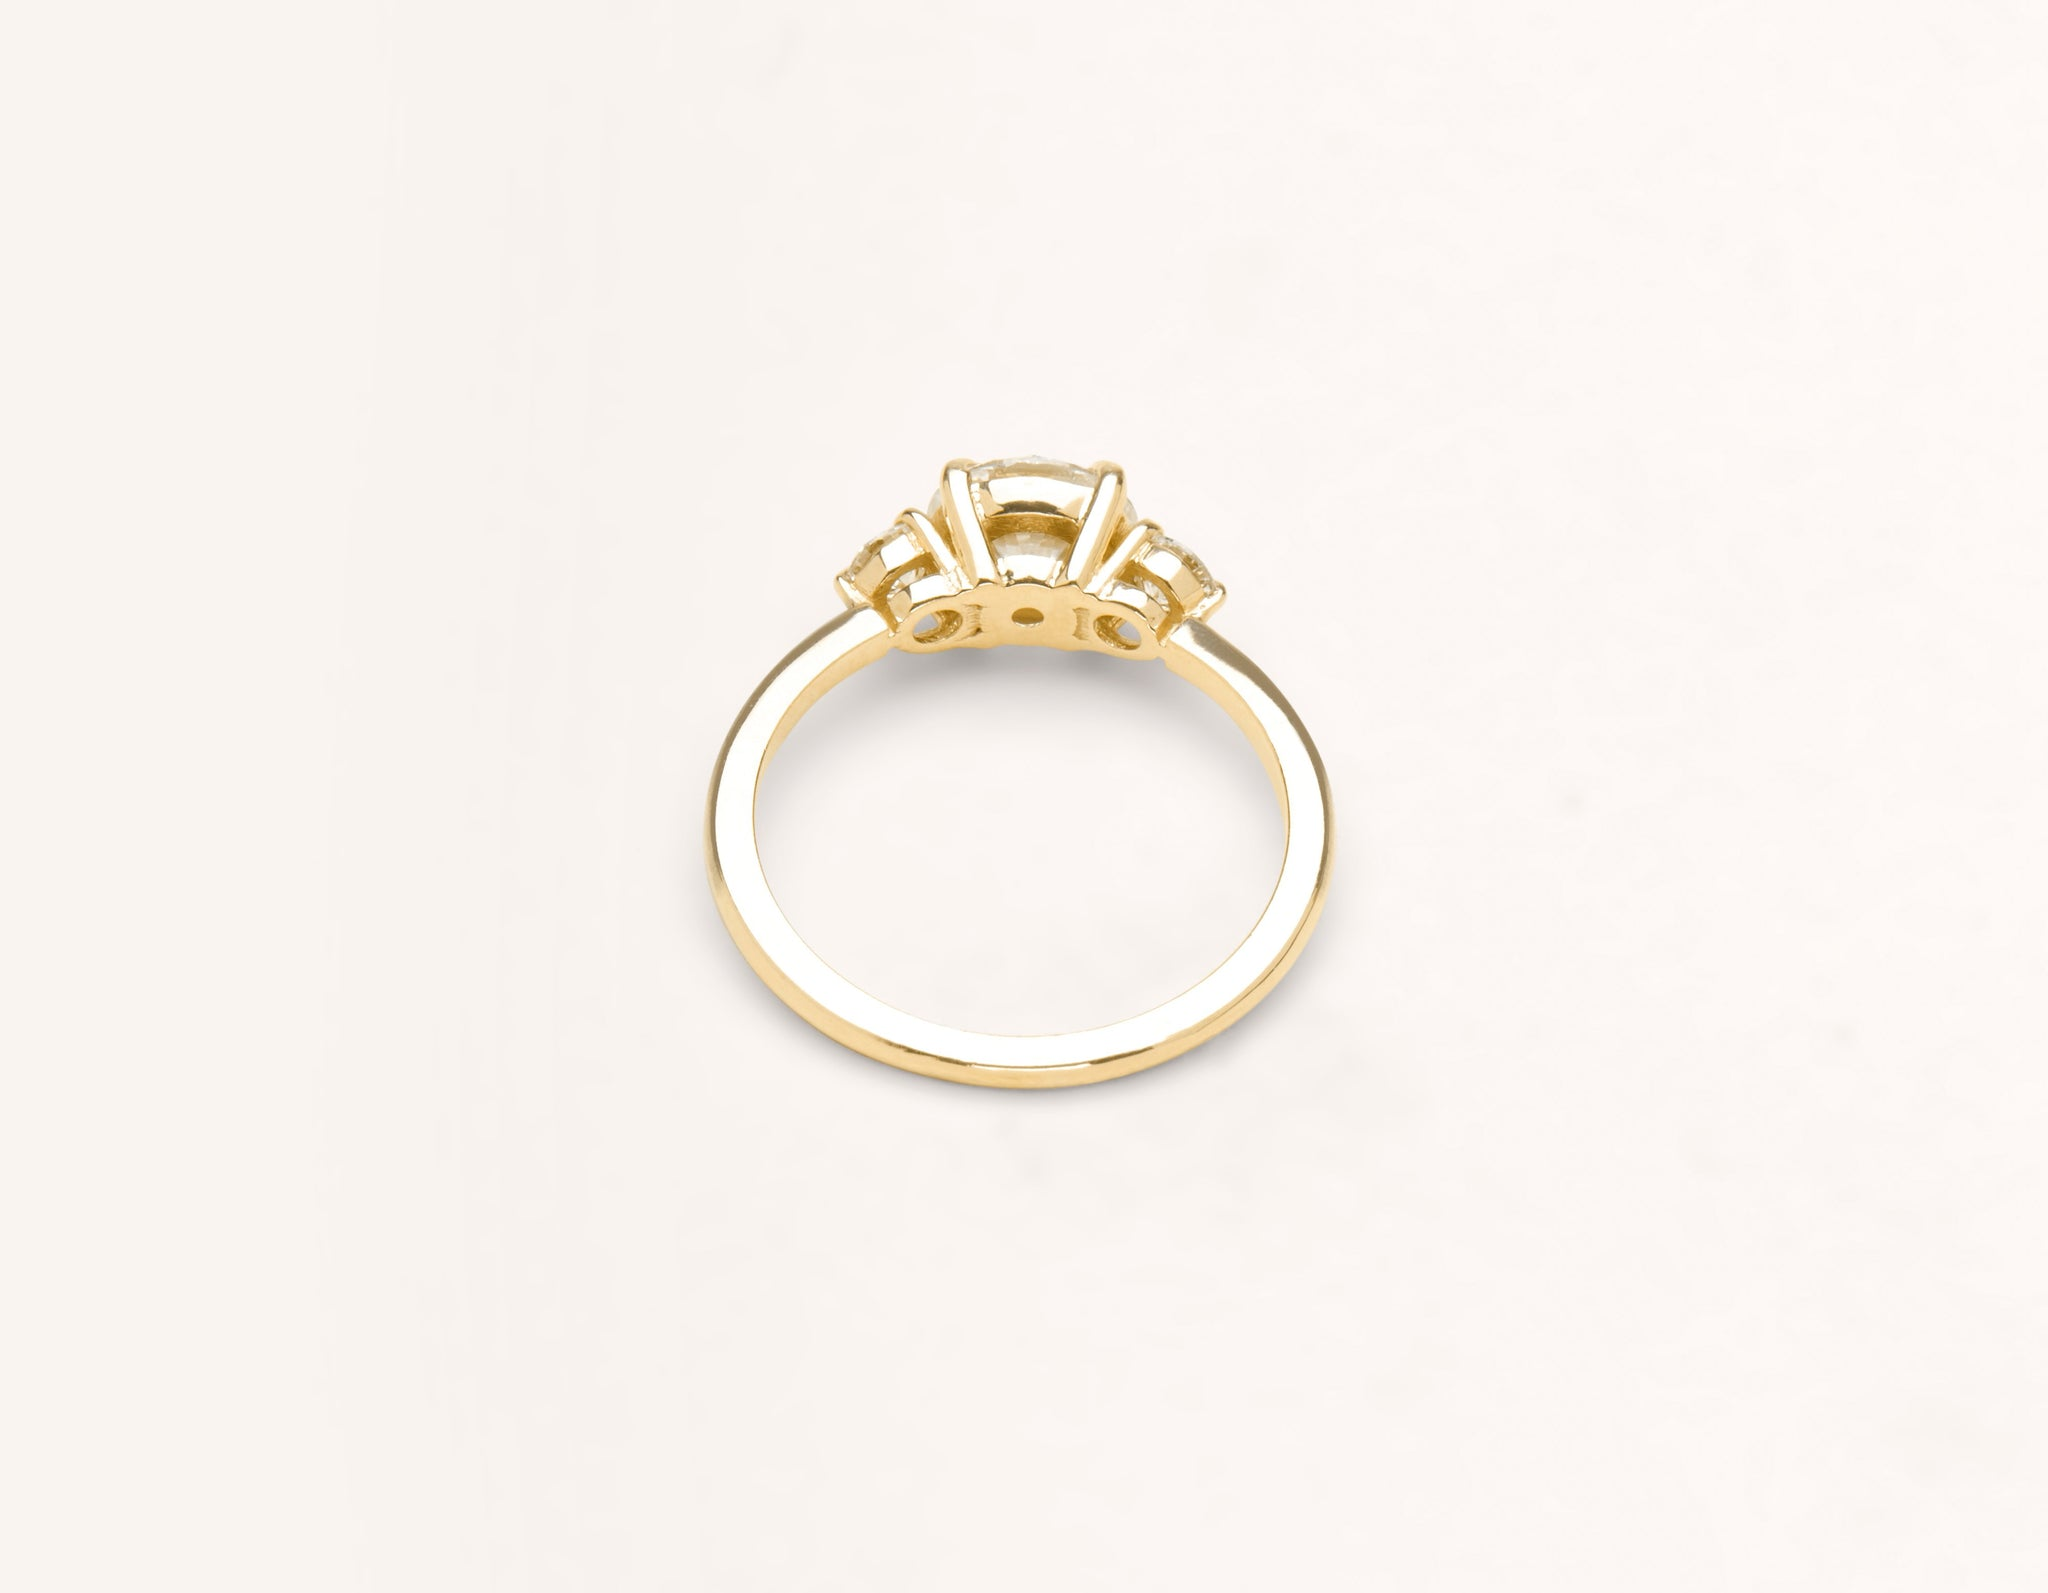 Vrai & Oro 18k solid yellow gold Diamond engagement ring The Three Stone simple classic band